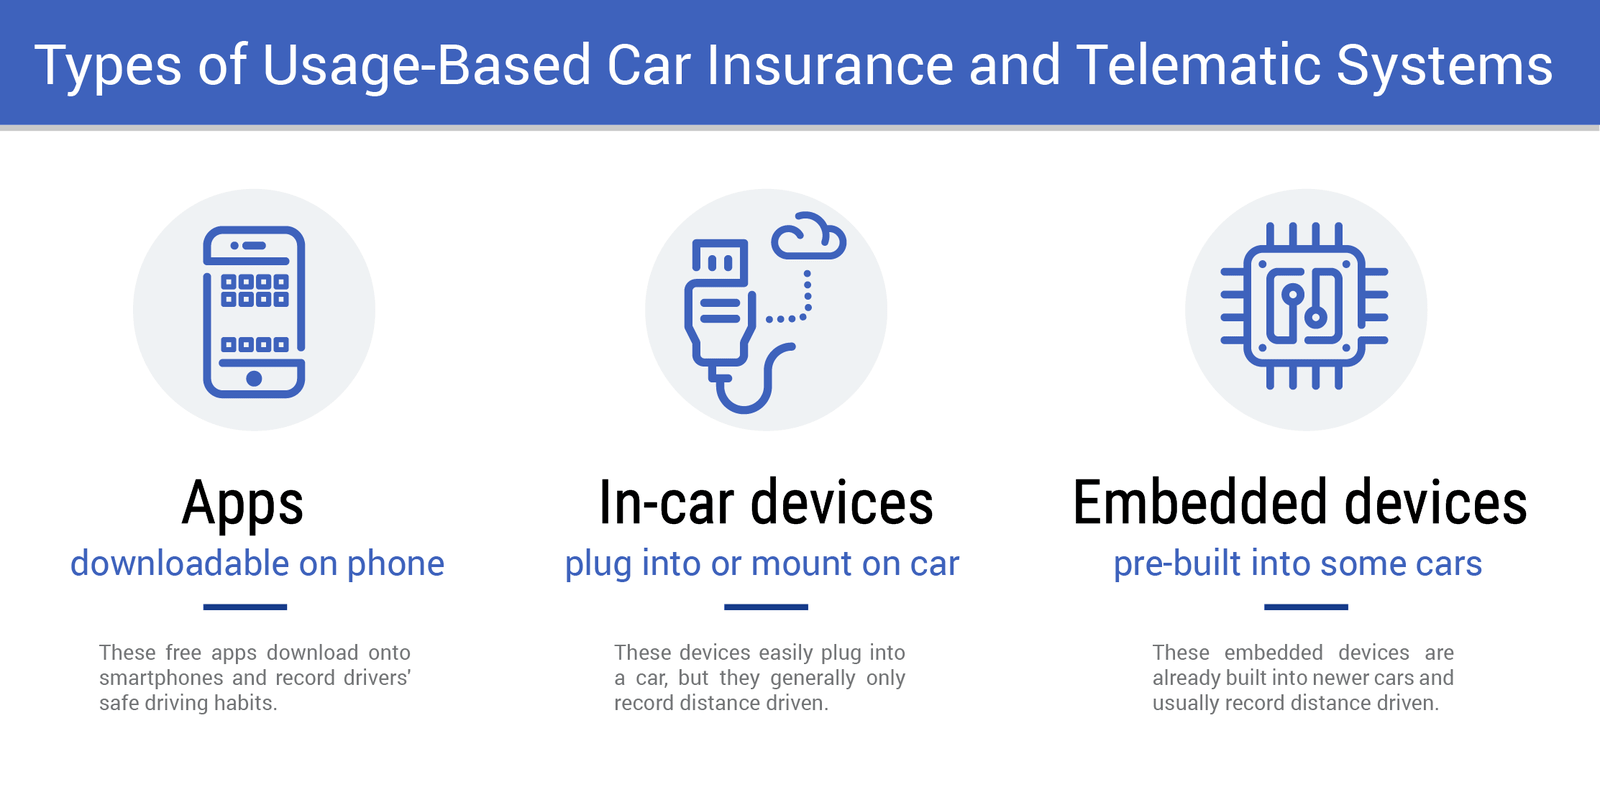 Types of Usage Based Car Insurnace